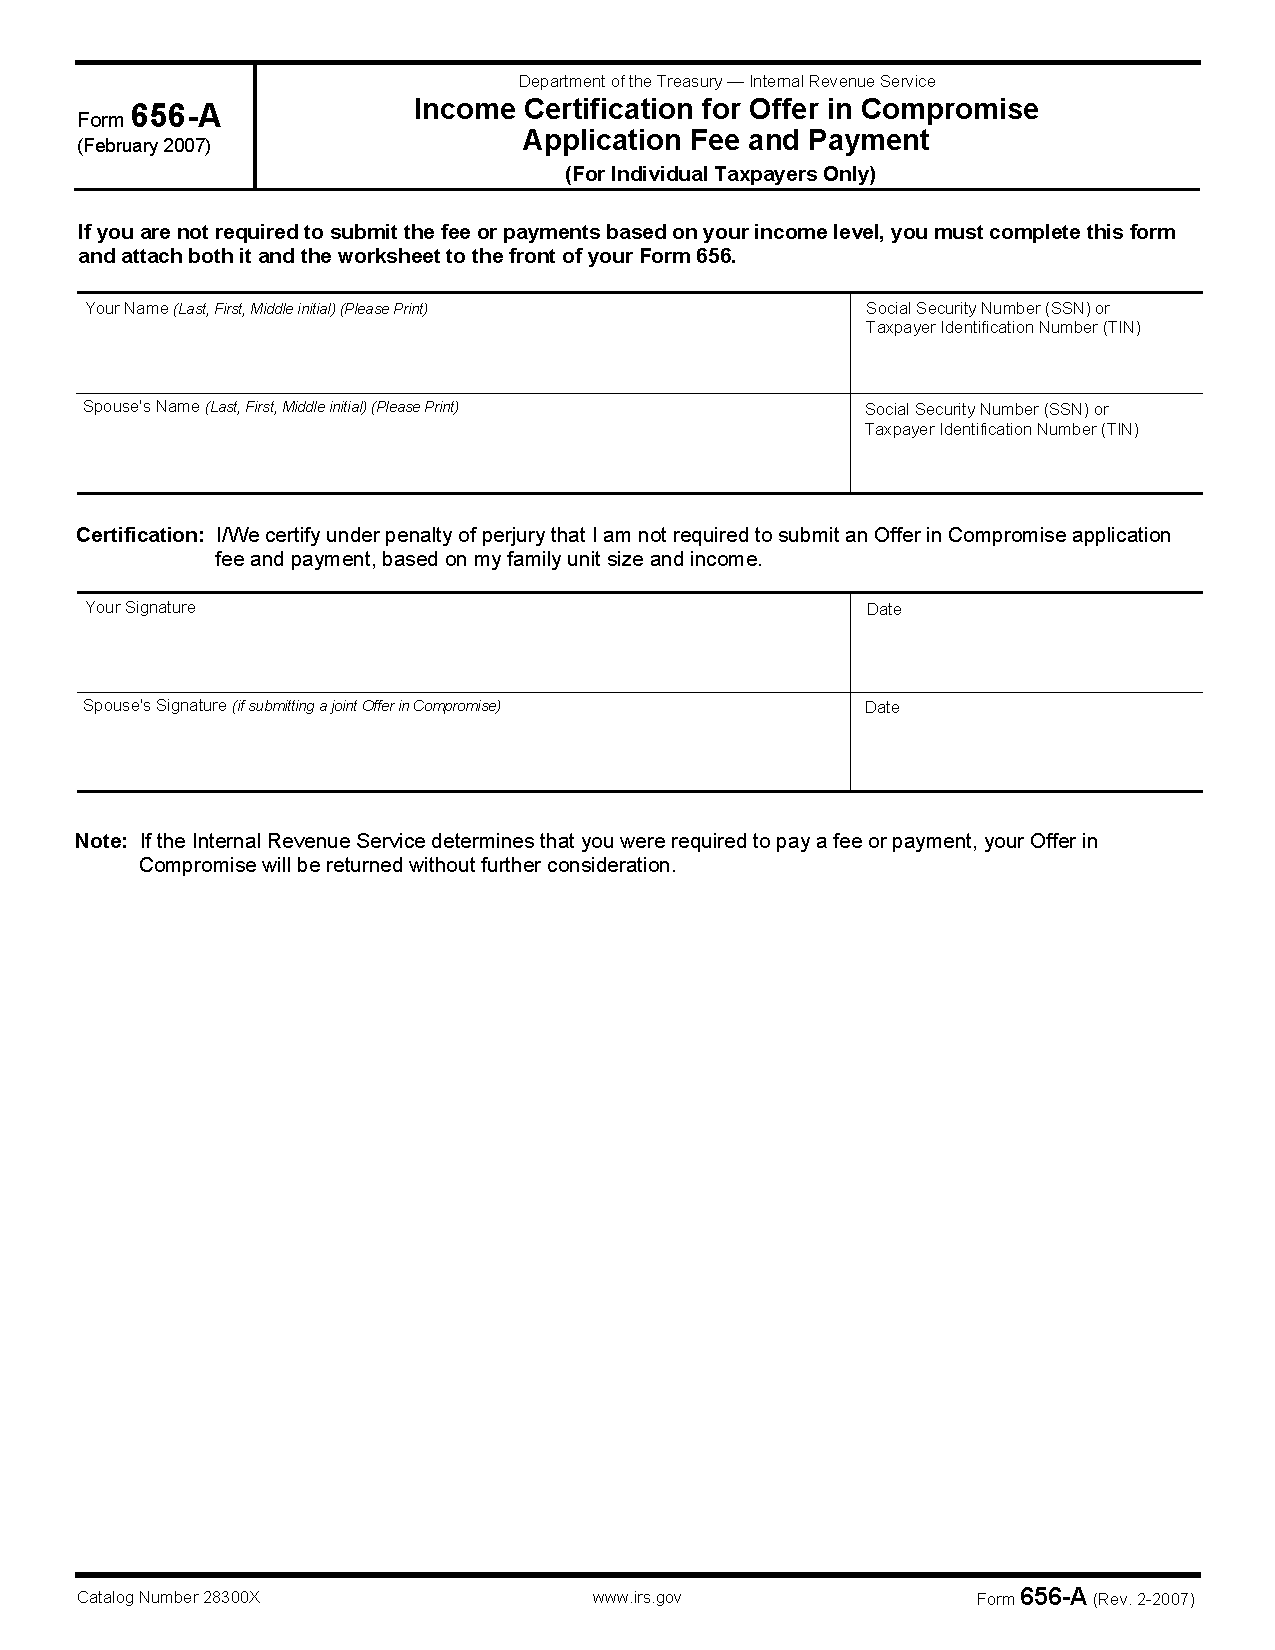 Form 656 a income certification for offer in compromise application view all 2011 irs tax forms falaconquin